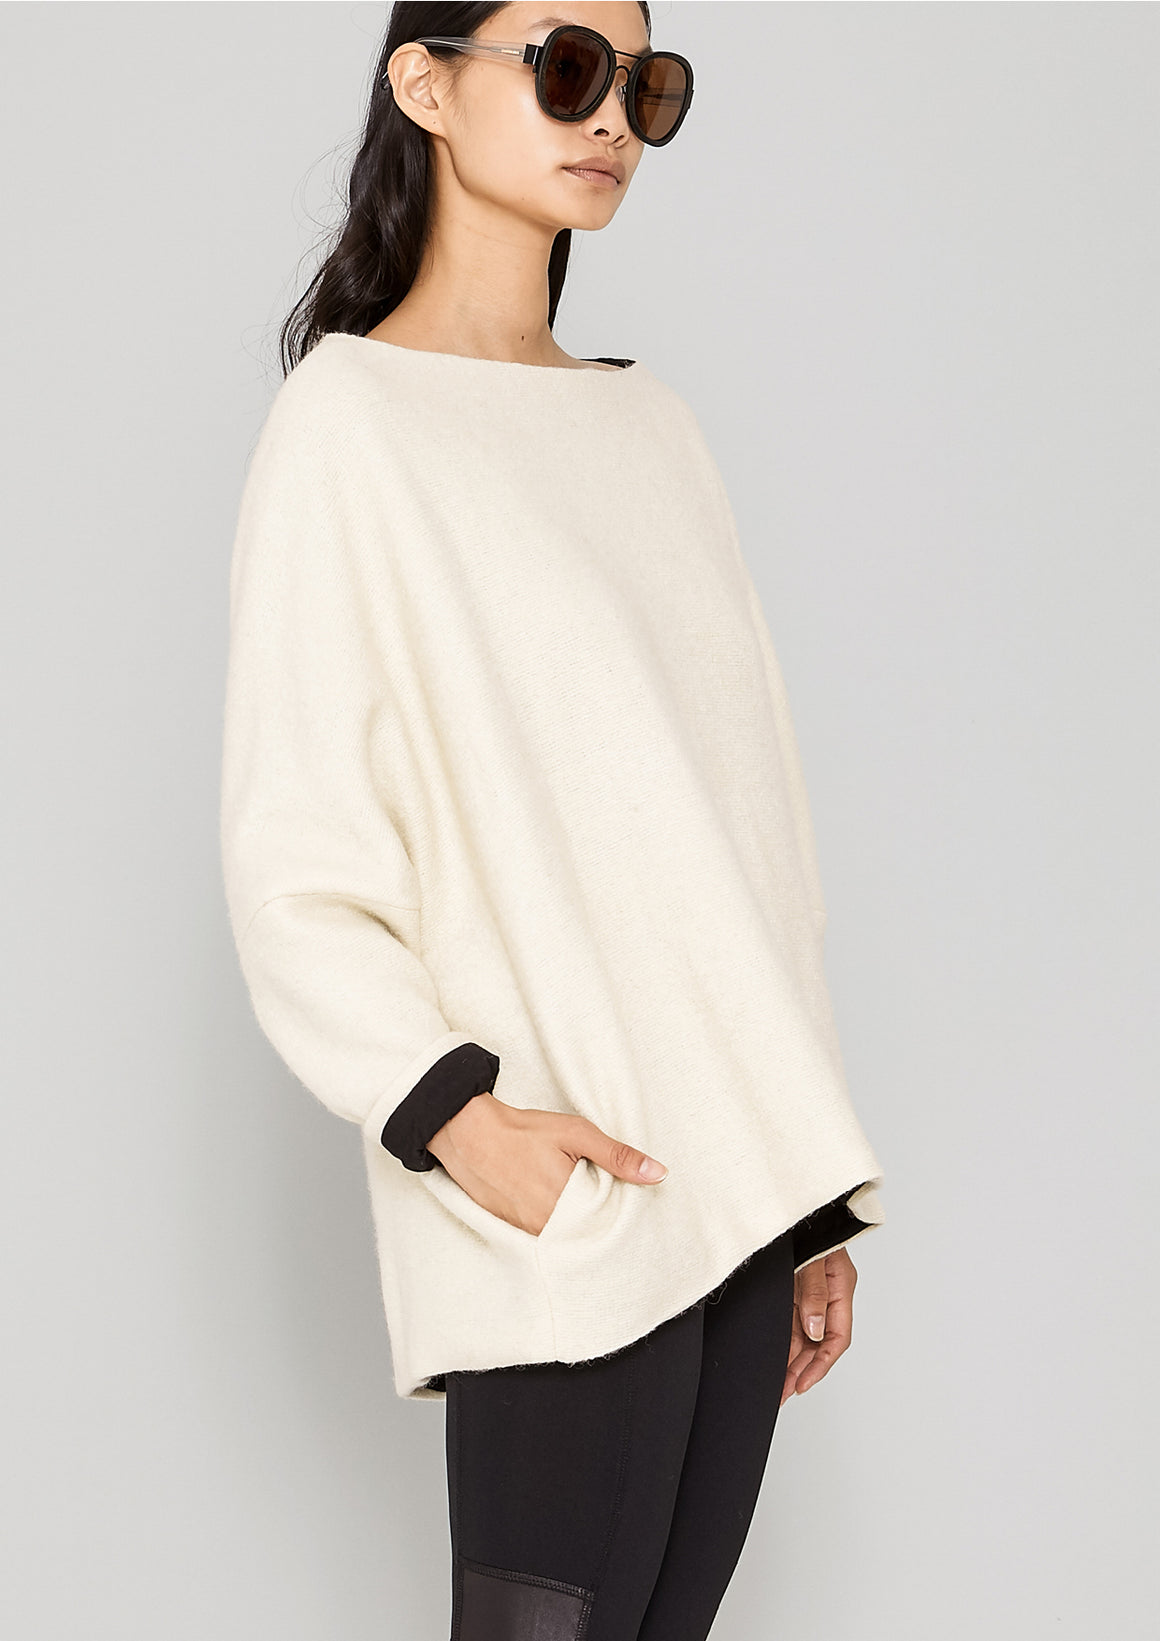 SWEATER POCKETS - WOOL BLEND ivory - BERENIK